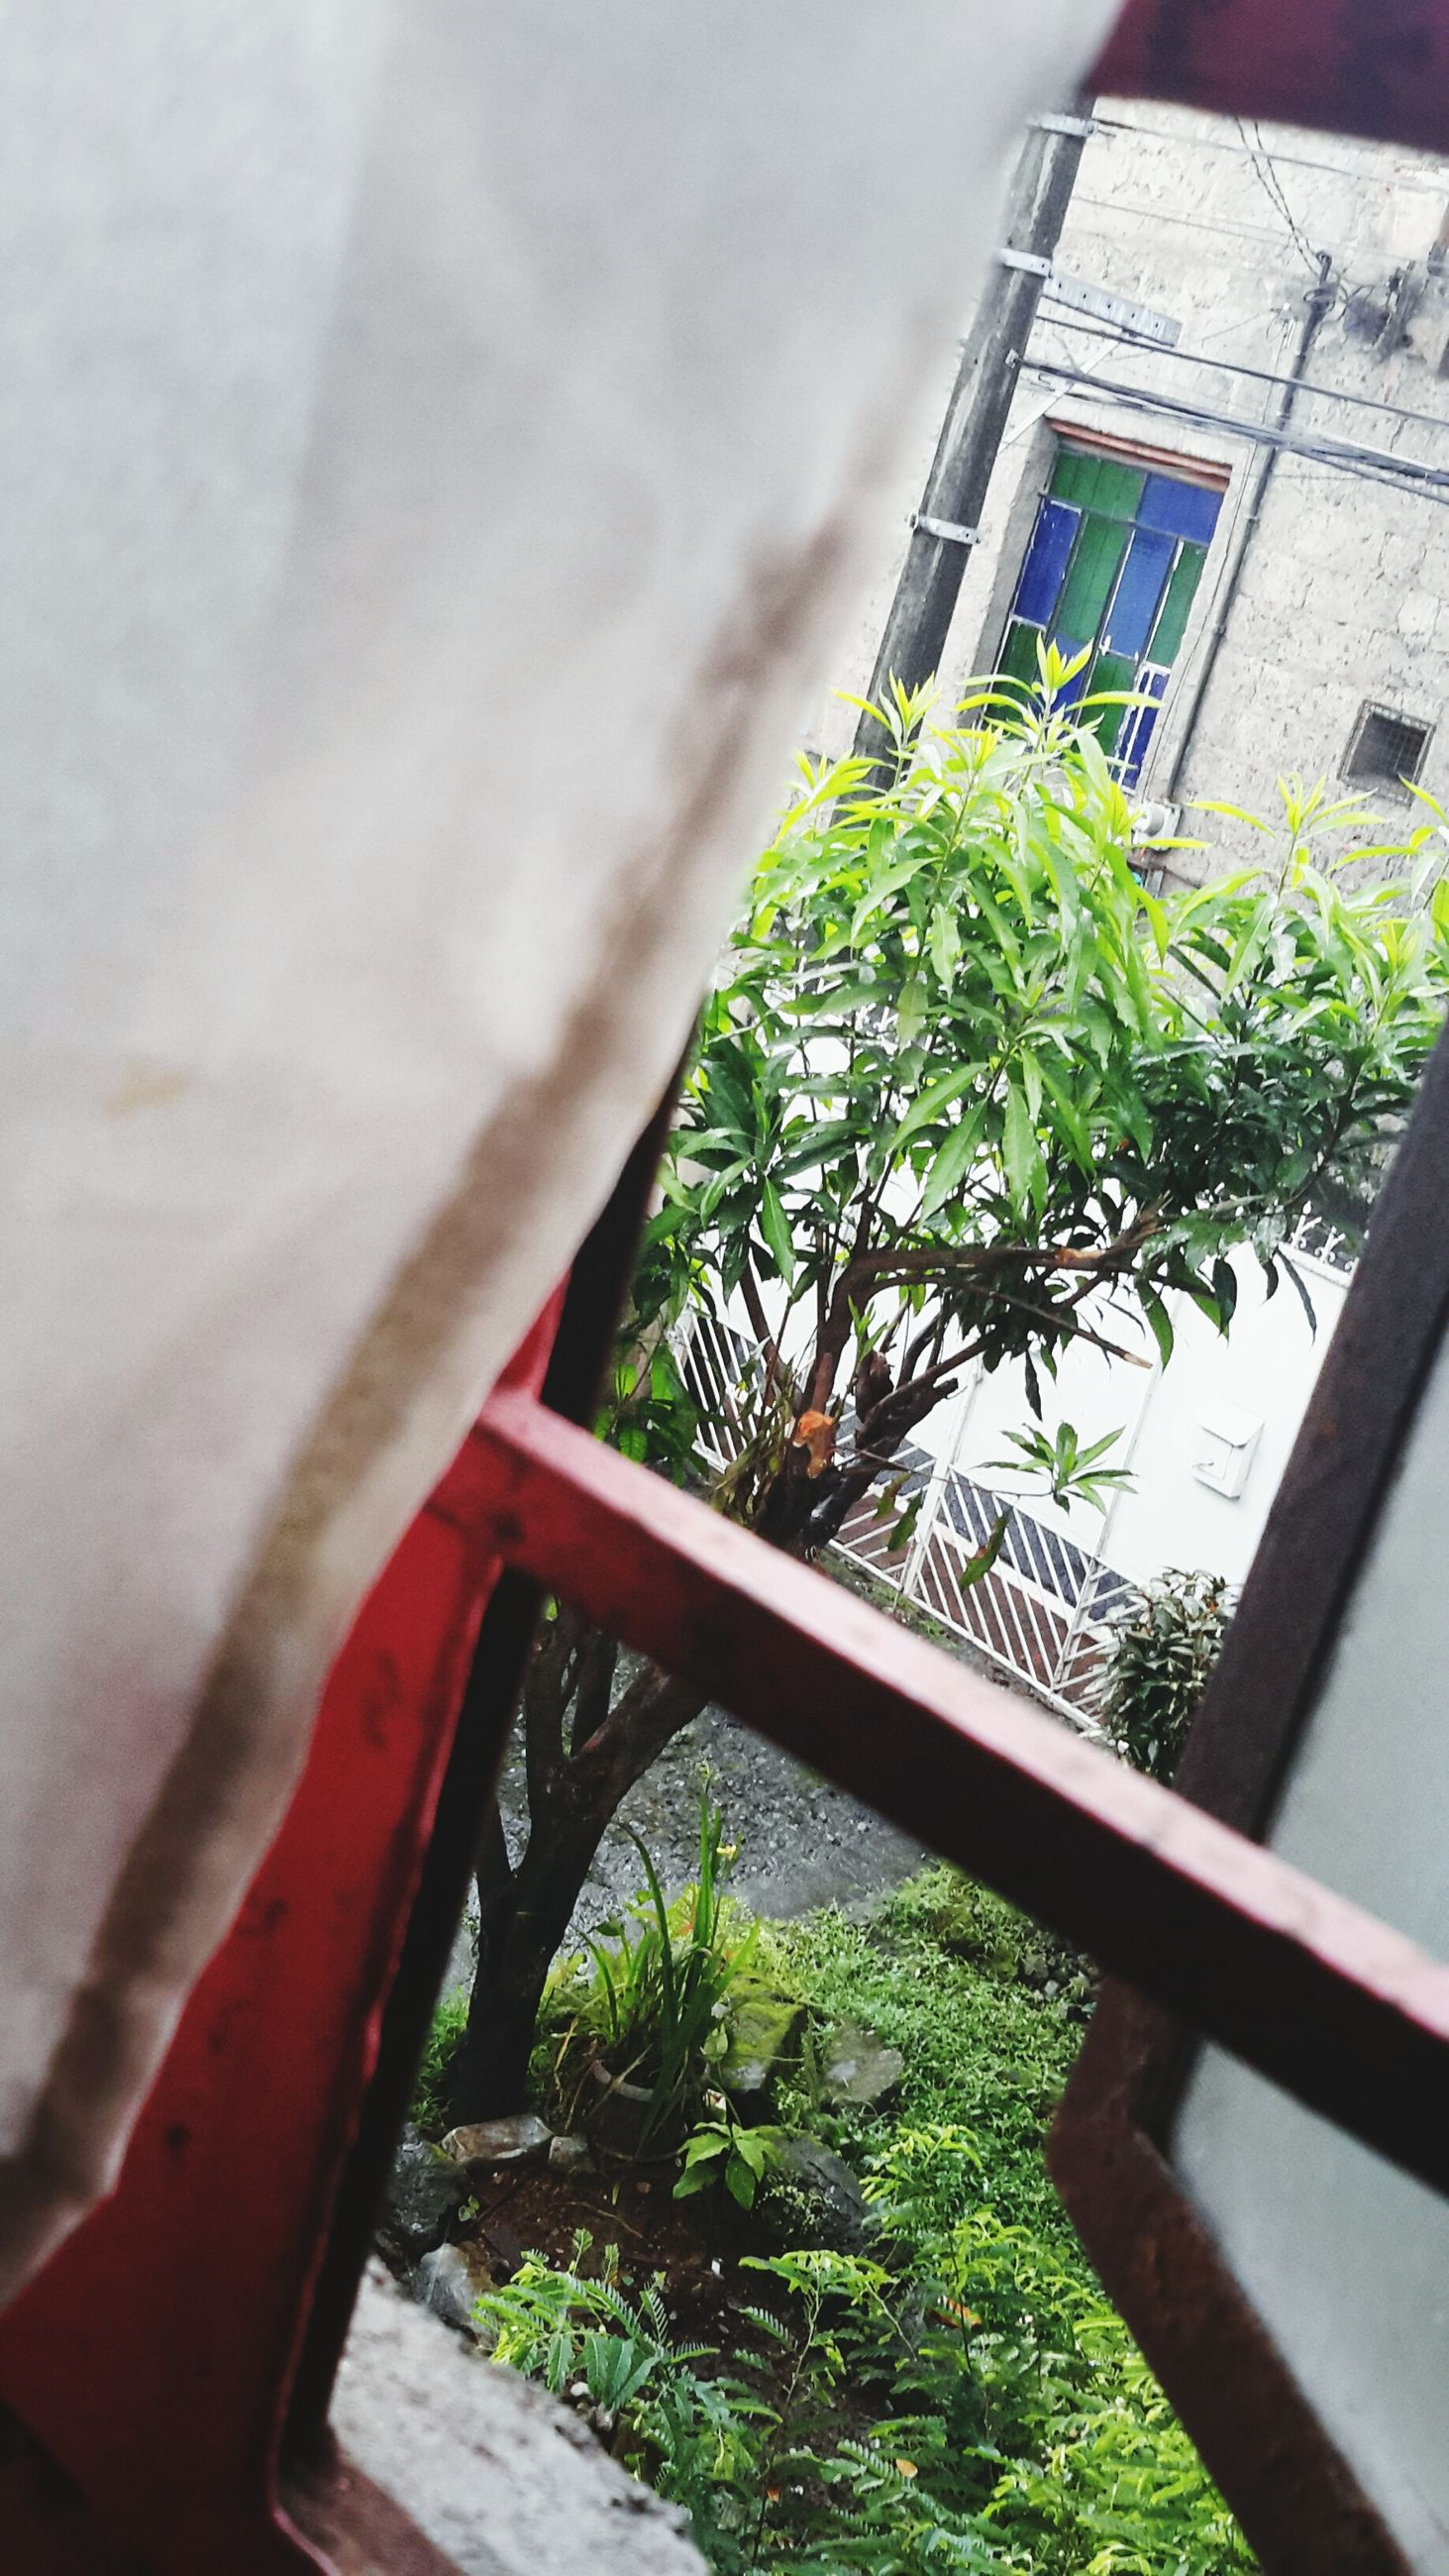 window, built structure, architecture, building exterior, tree, growth, house, plant, low angle view, green color, wall - building feature, potted plant, day, front or back yard, no people, balcony, residential structure, indoors, window sill